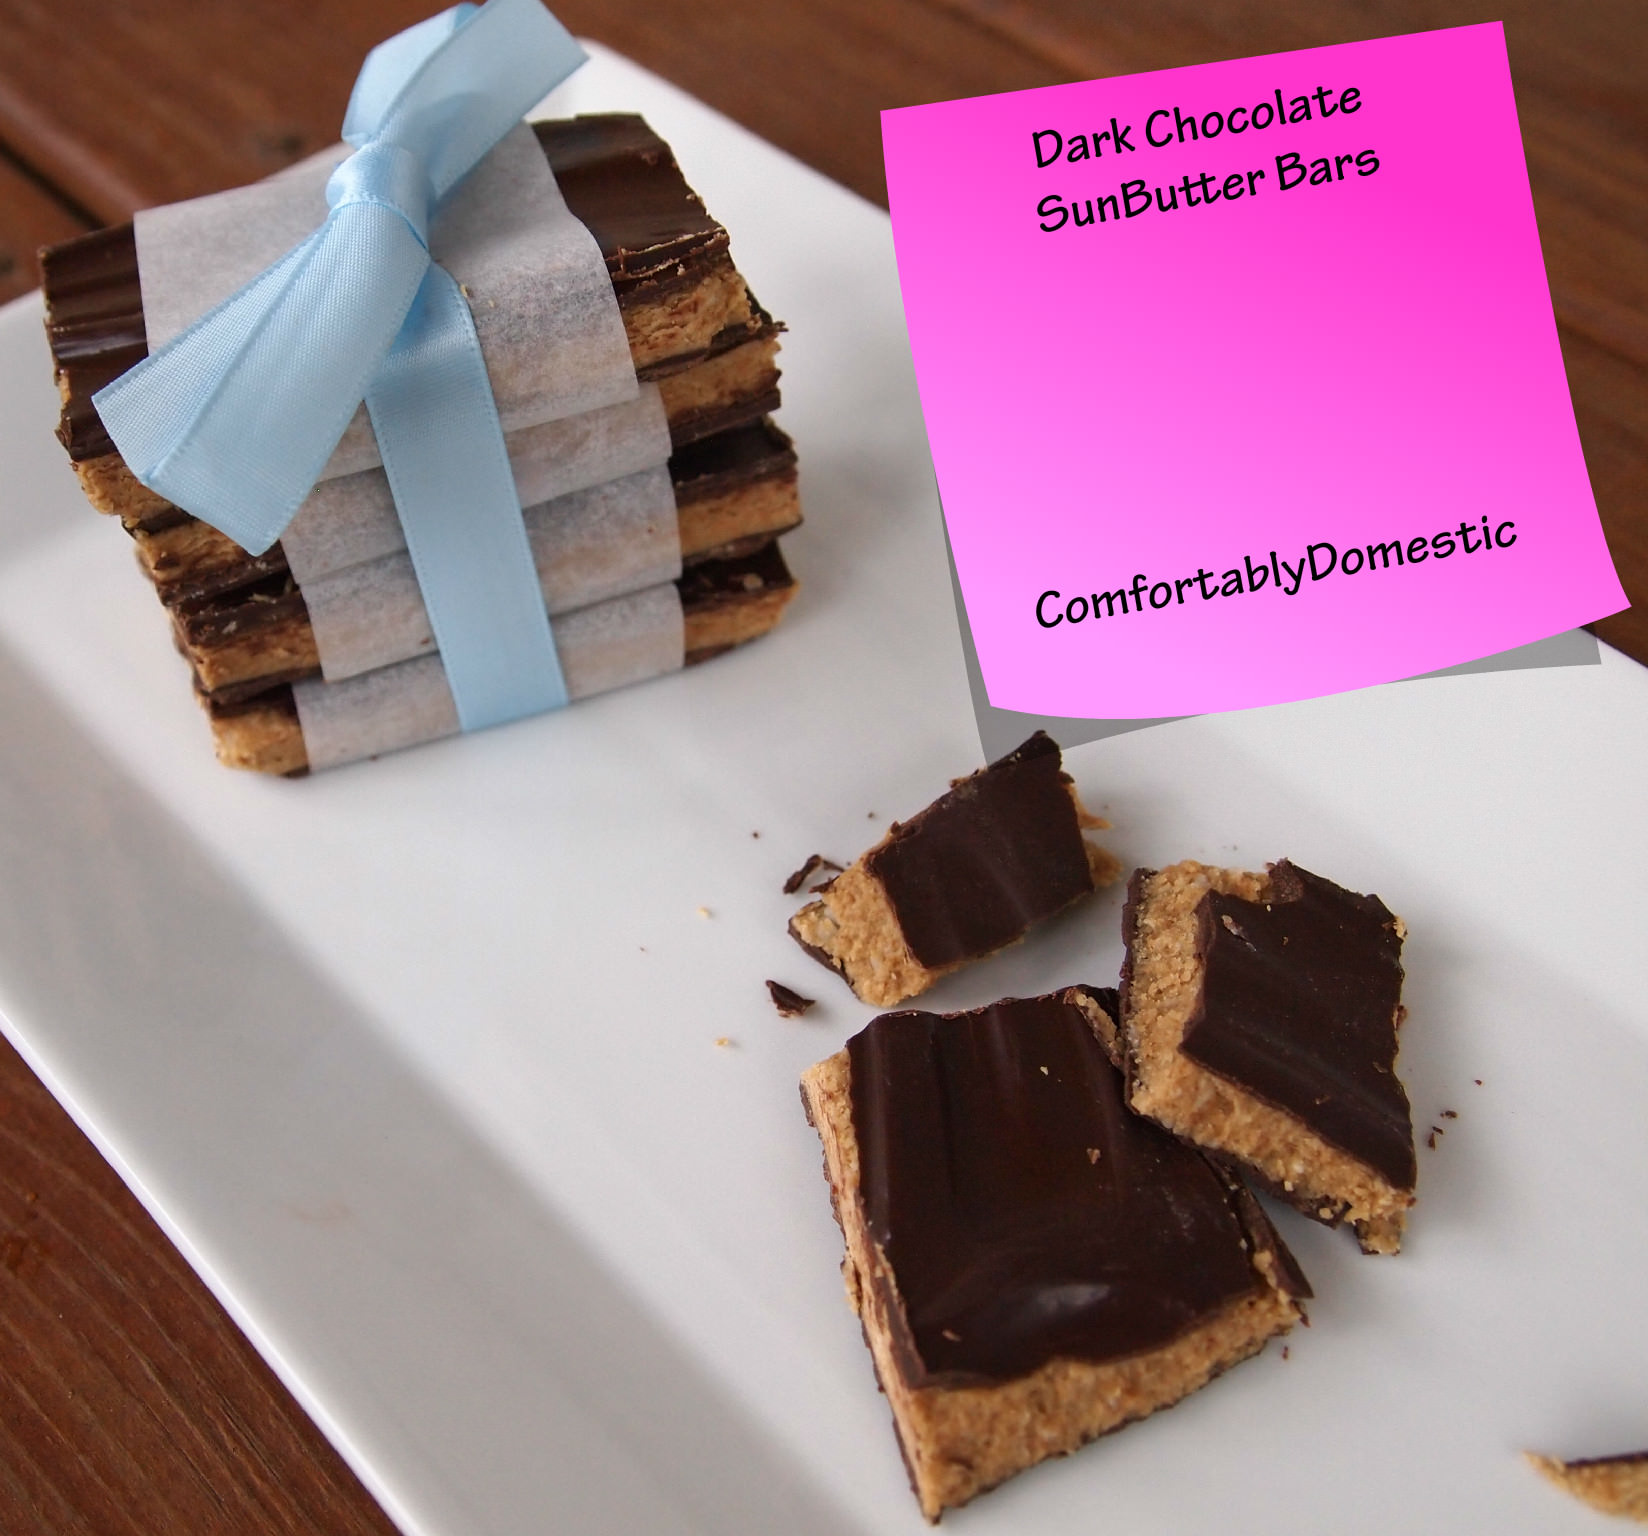 Dark Chocolate SunButter Candy Bars | ComfortablyDomestic.com are a delicious, allergy friendly copy cat of a Reese's peanut butter cup because it's nut free!